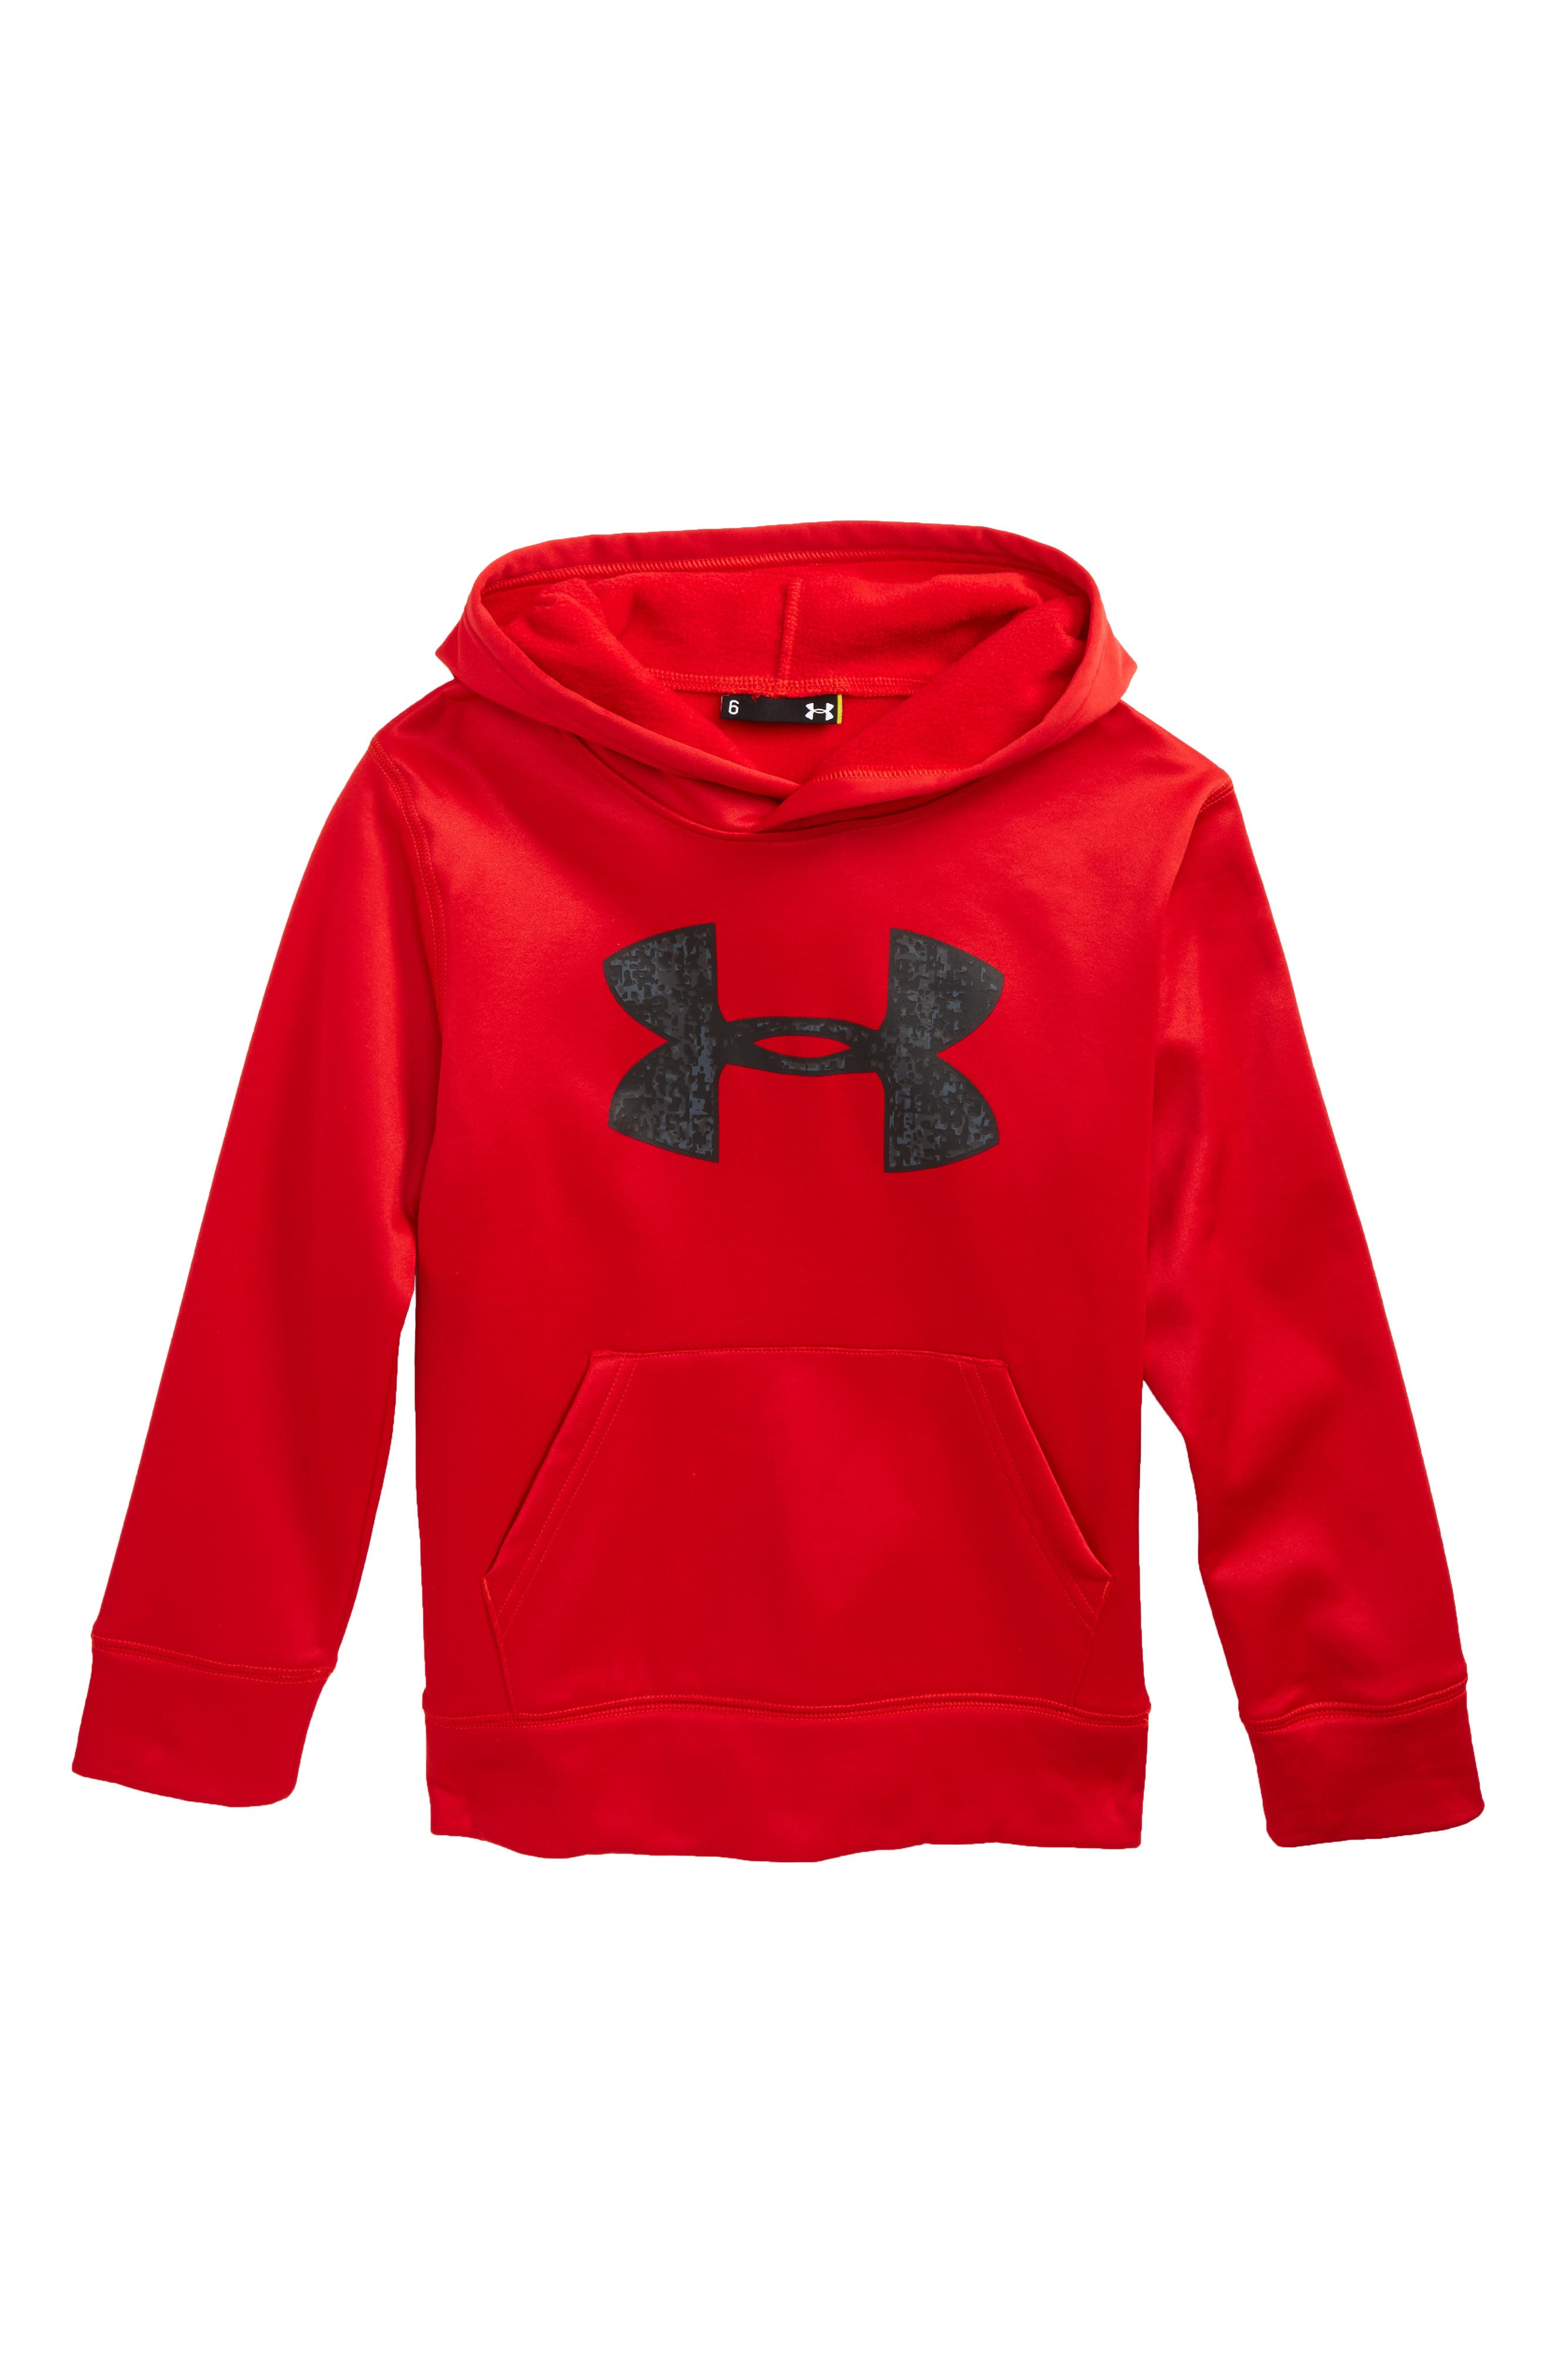 Digital City Logo Pullover Hoodie,                         Main,                         color, Red